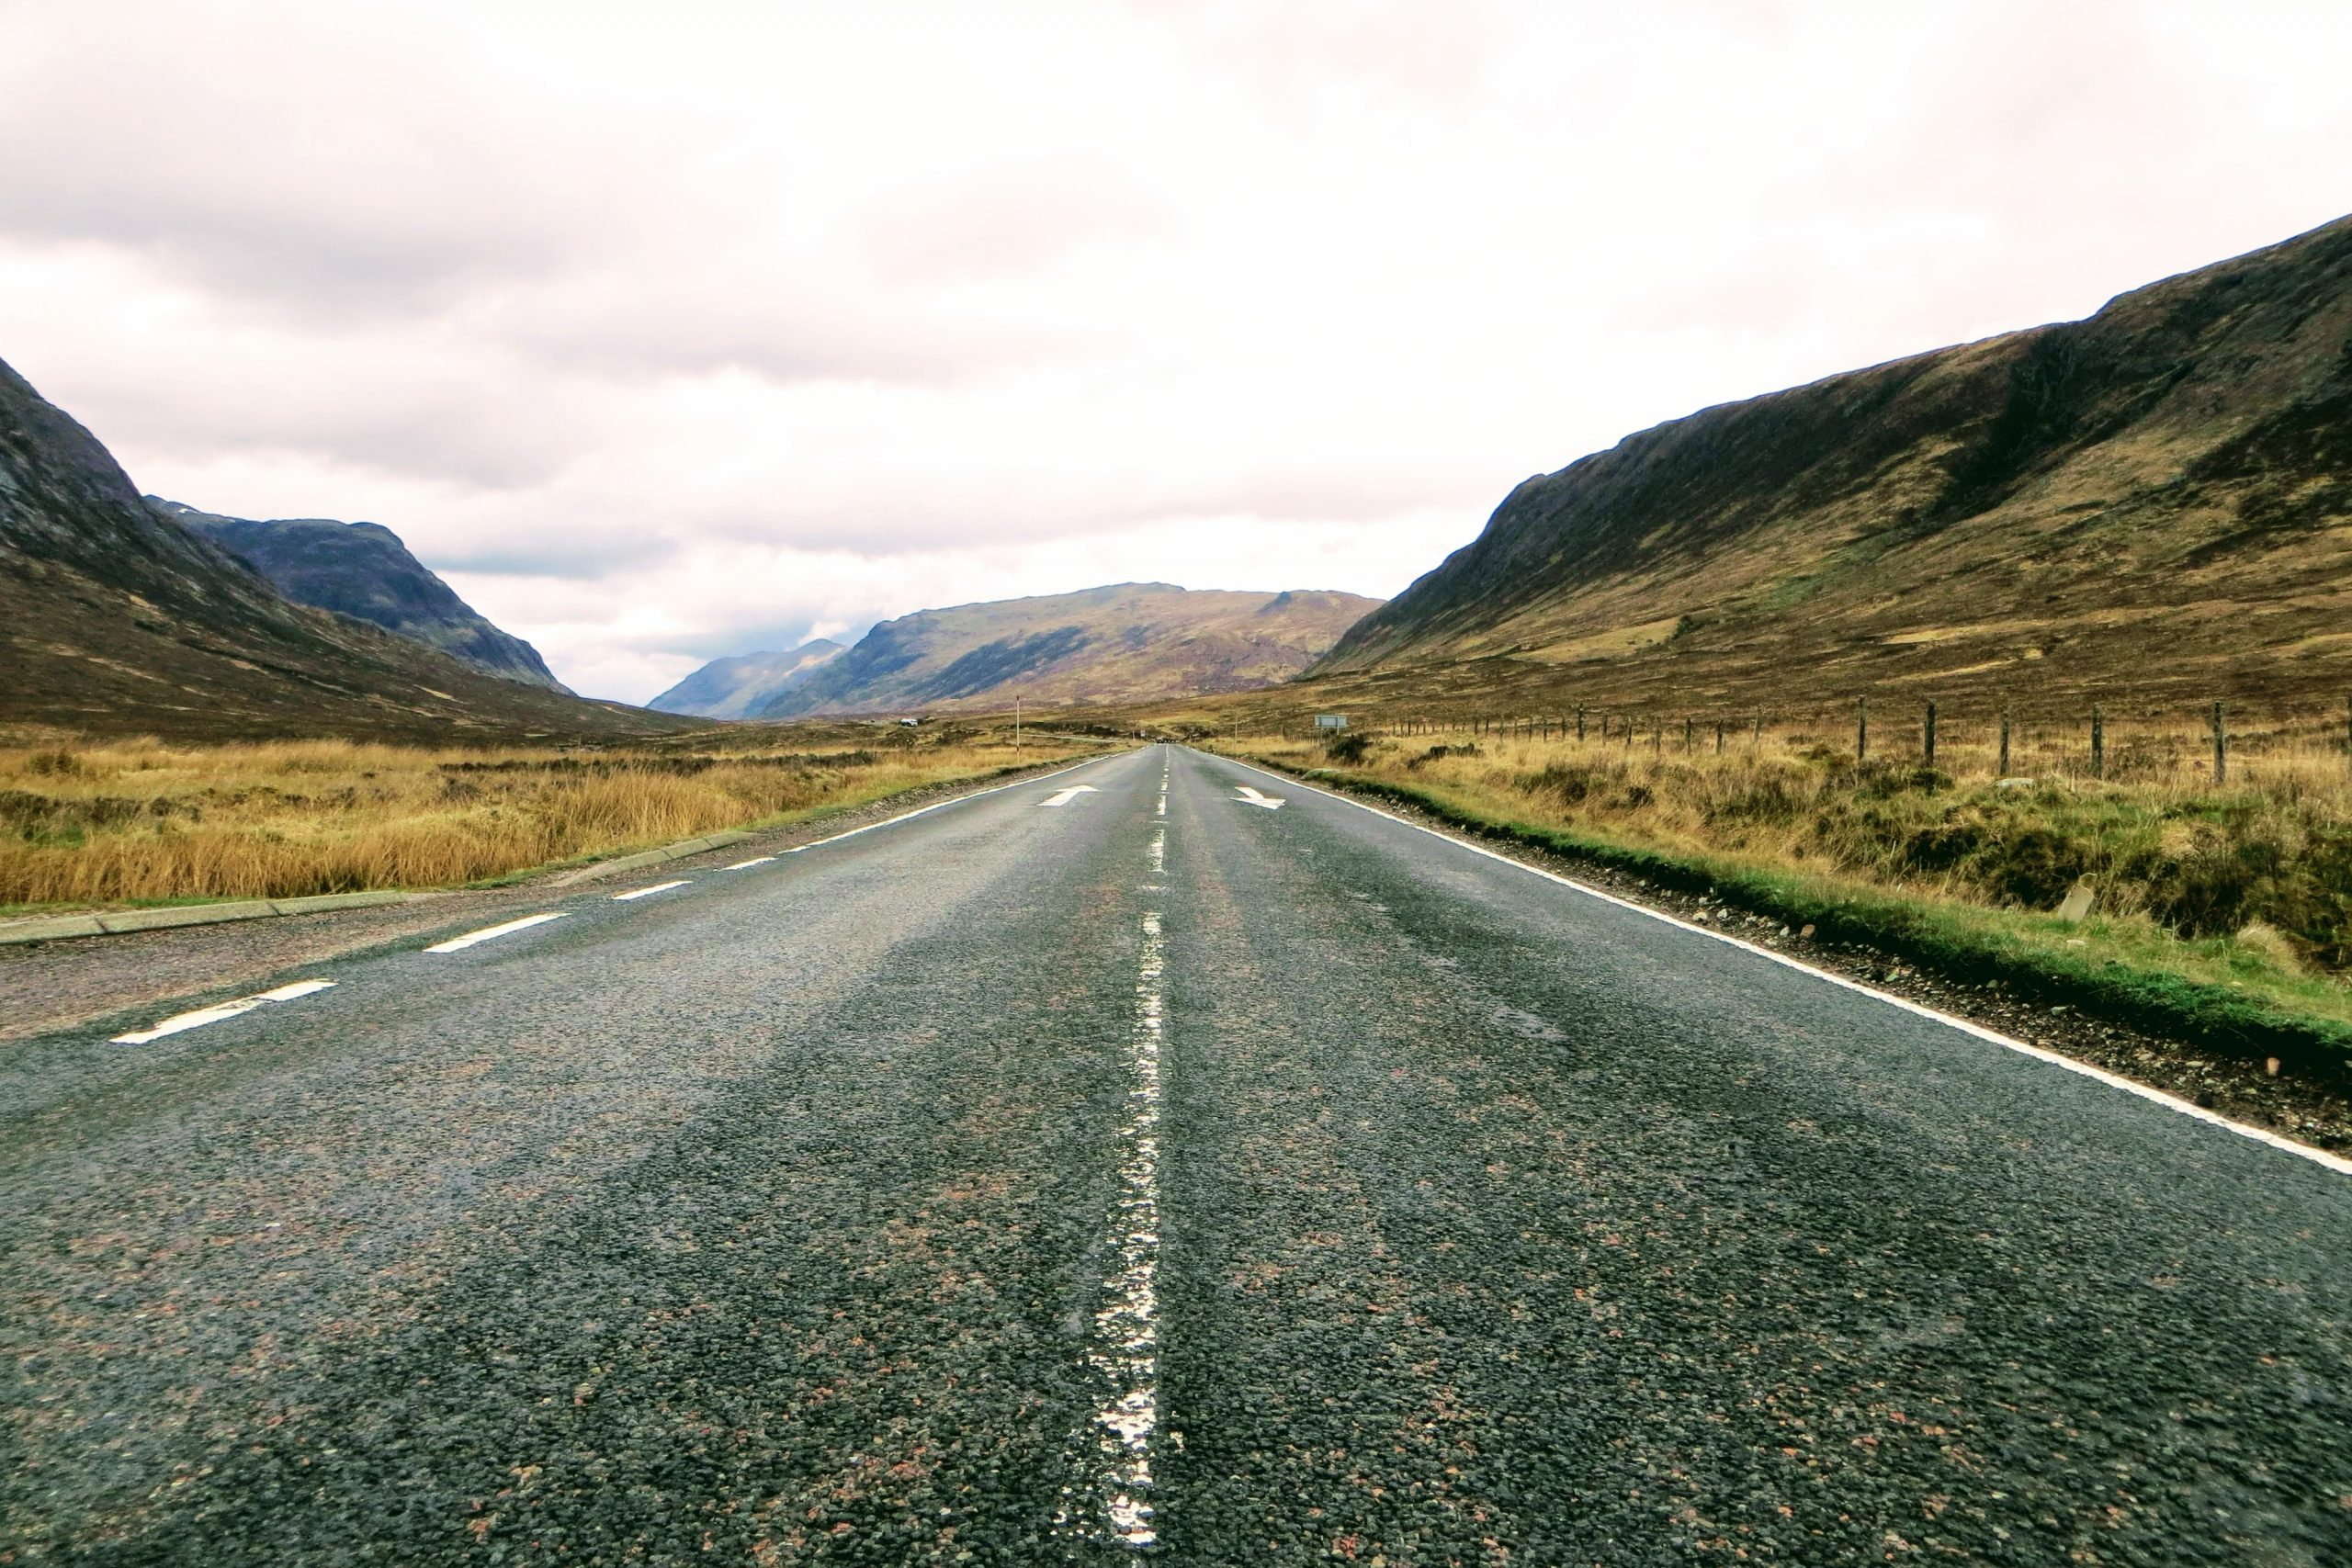 Tailor-made Tours of Scotland - Road